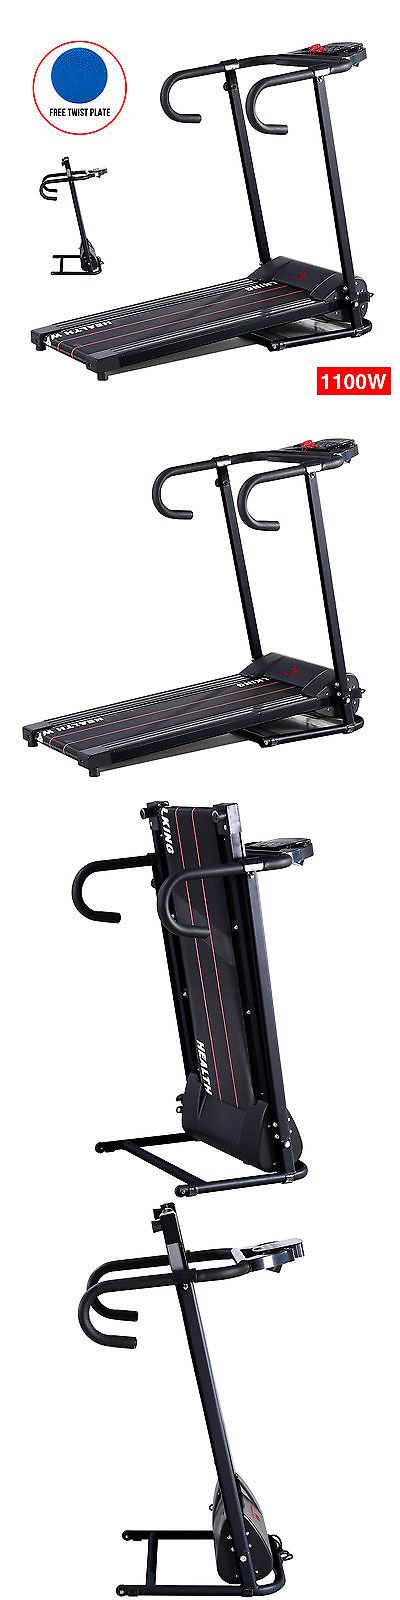 Treadmills 15280: New Folding Electric Treadmill Motorized Running Machine Portable Gym Fitness -> BUY IT NOW ONLY: $579.9 on eBay!